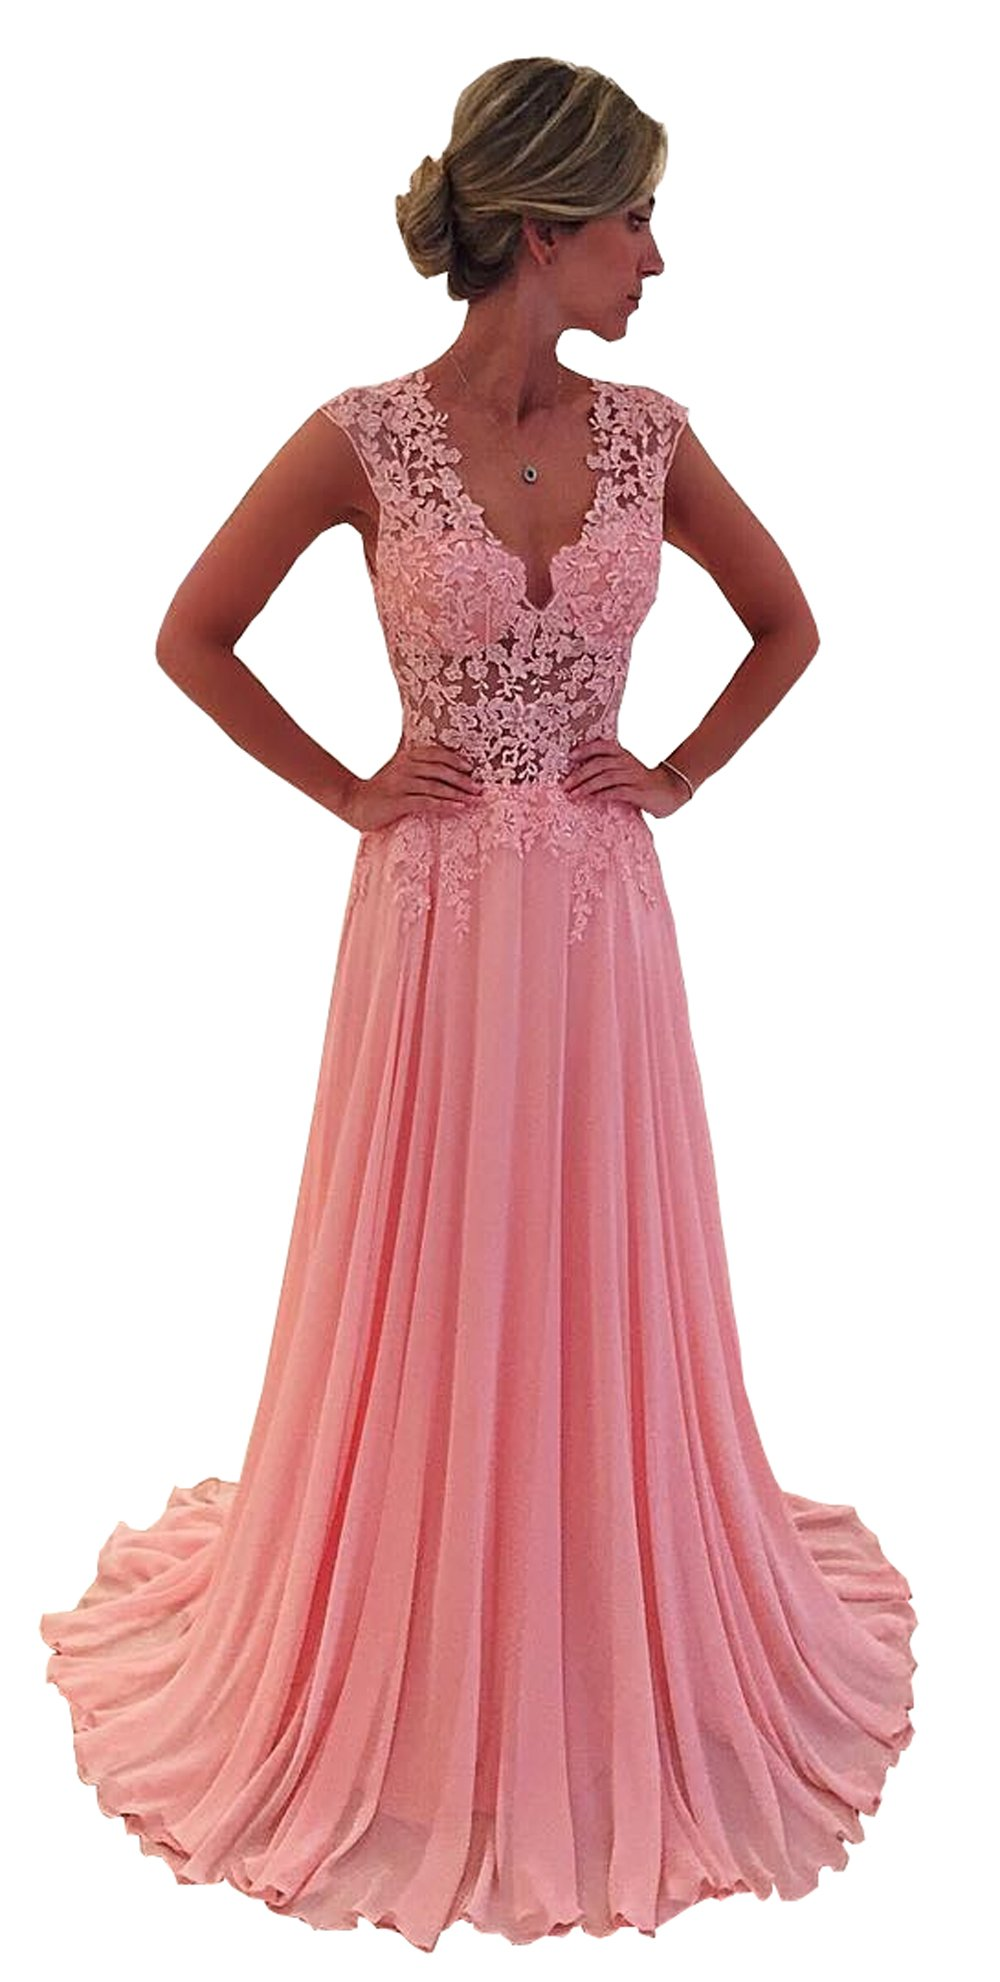 Nina Cheap Prom Dresses V Neck Sleeveless Women's Dress Formal Occasion Wear Party Gown Pink (4)